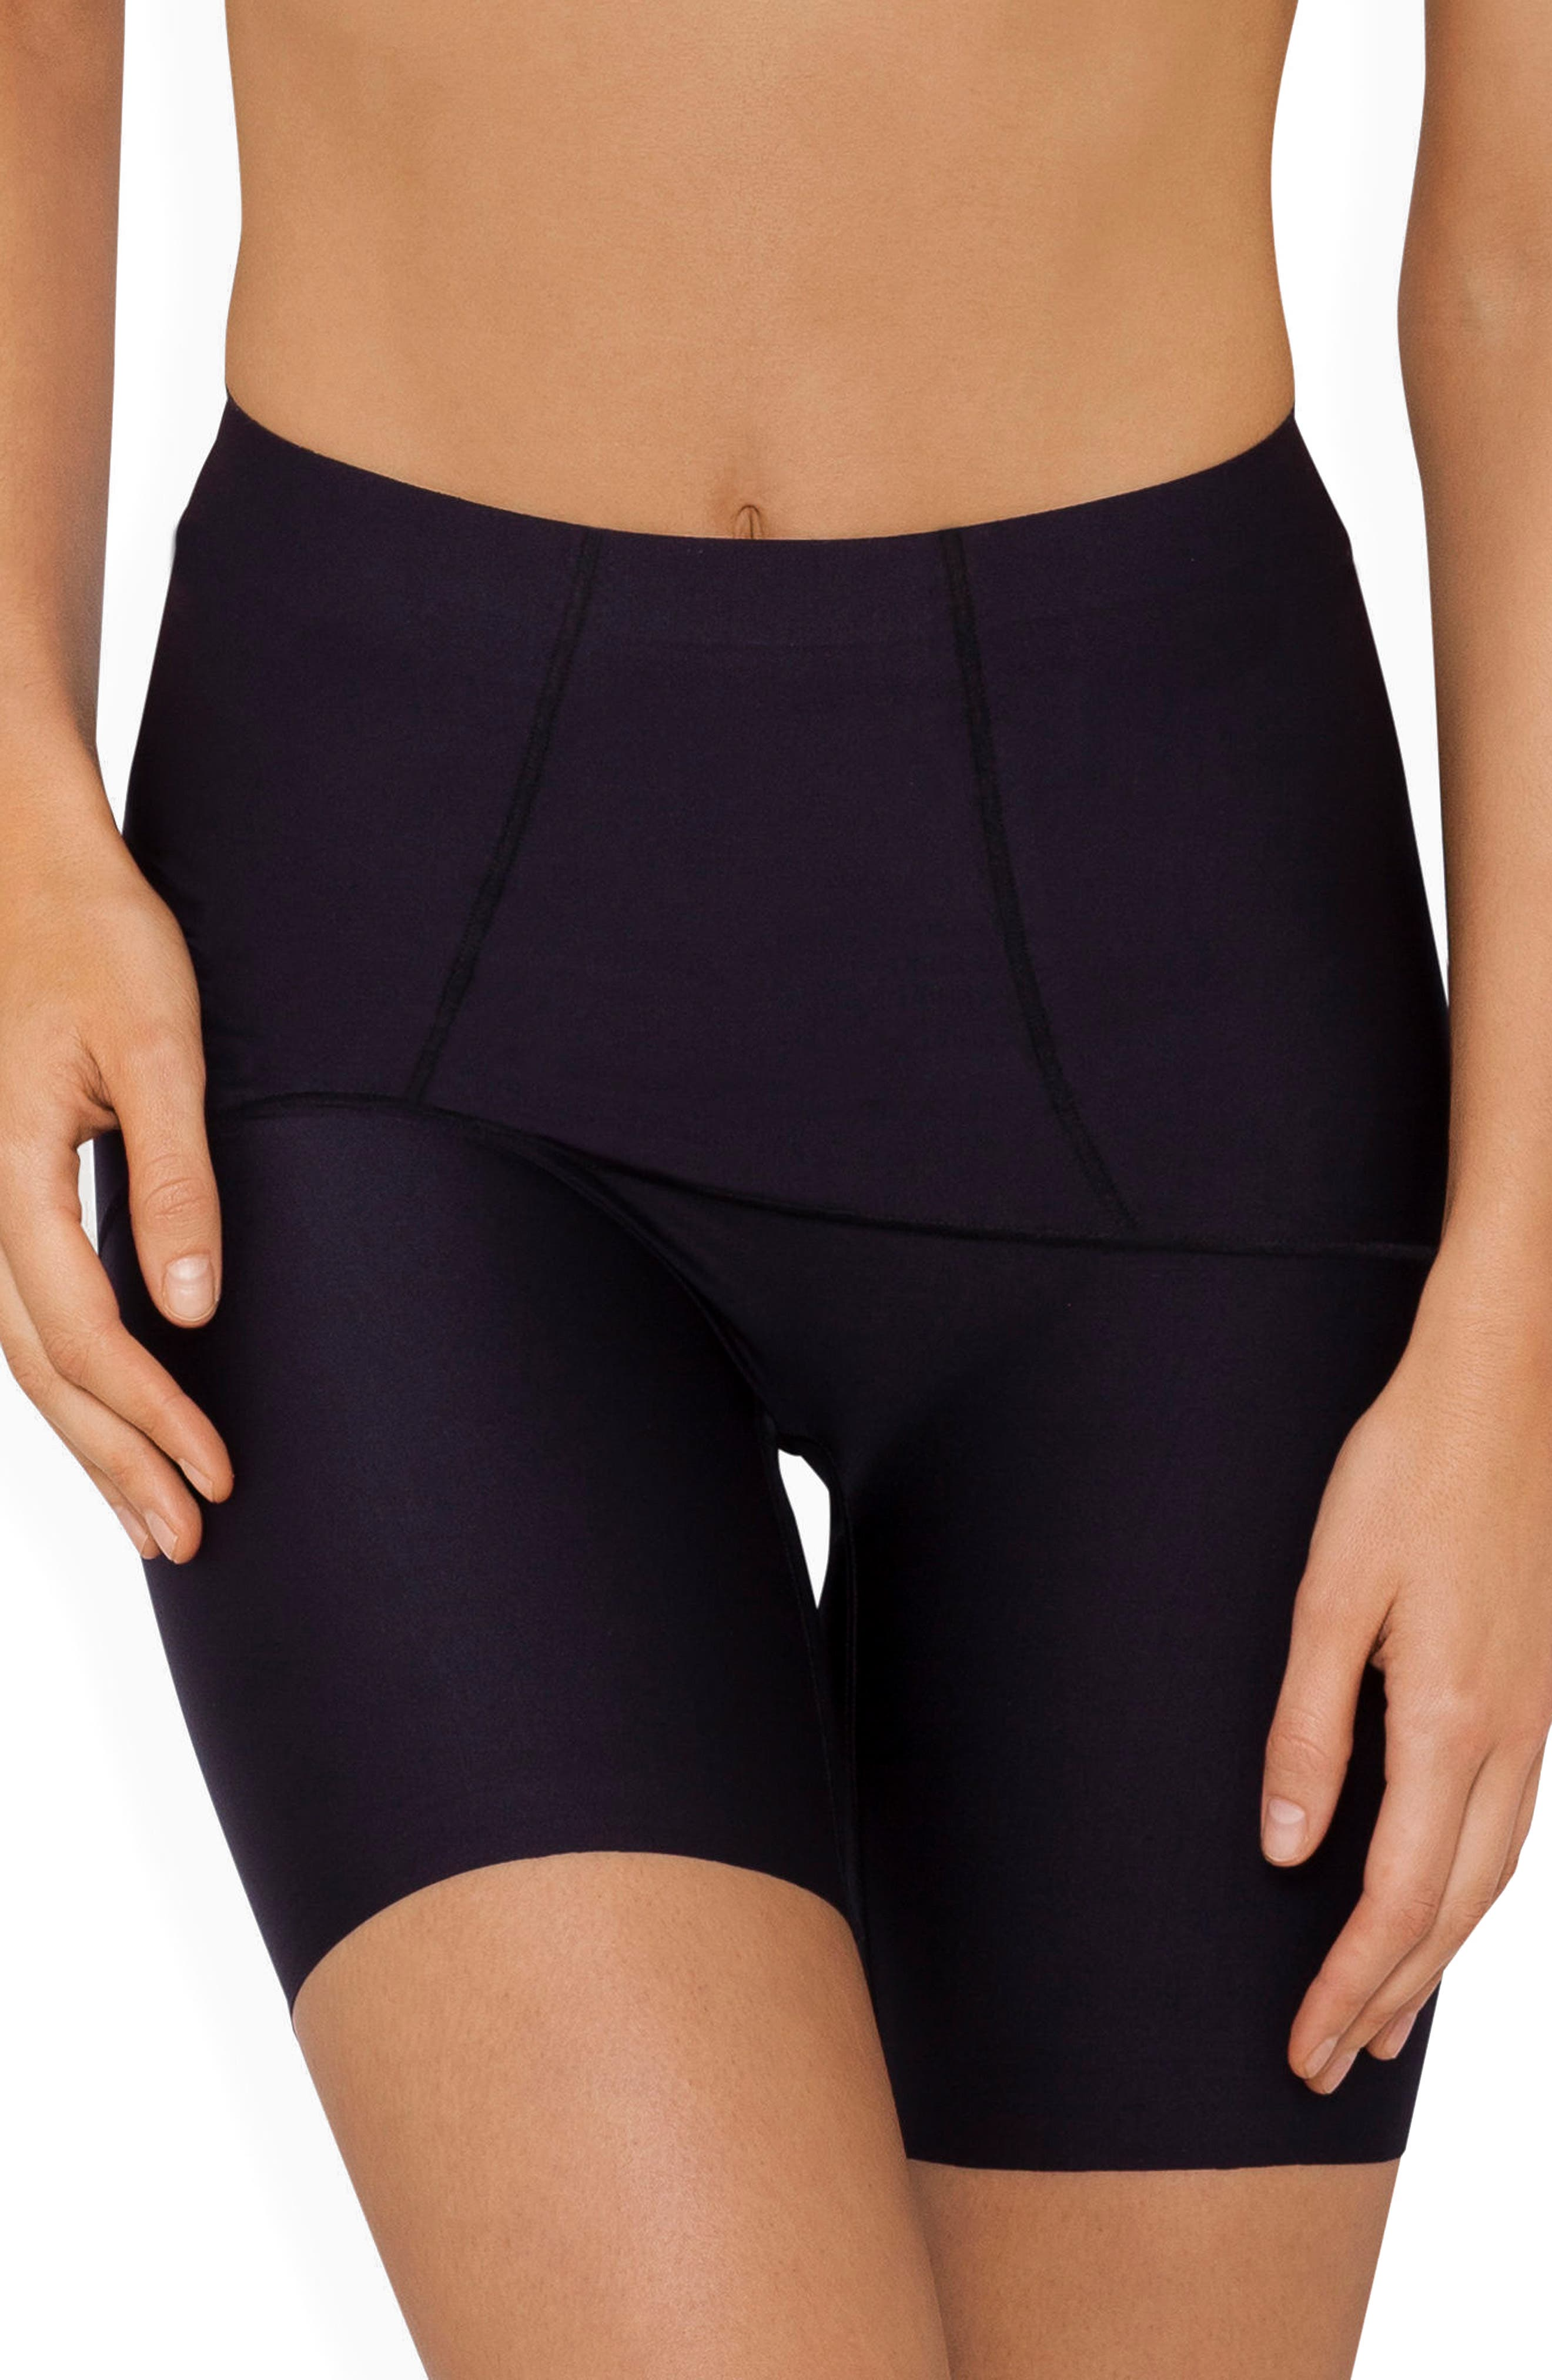 Body Architect High Waist Shaper Shorts,                             Main thumbnail 1, color,                             BLACK